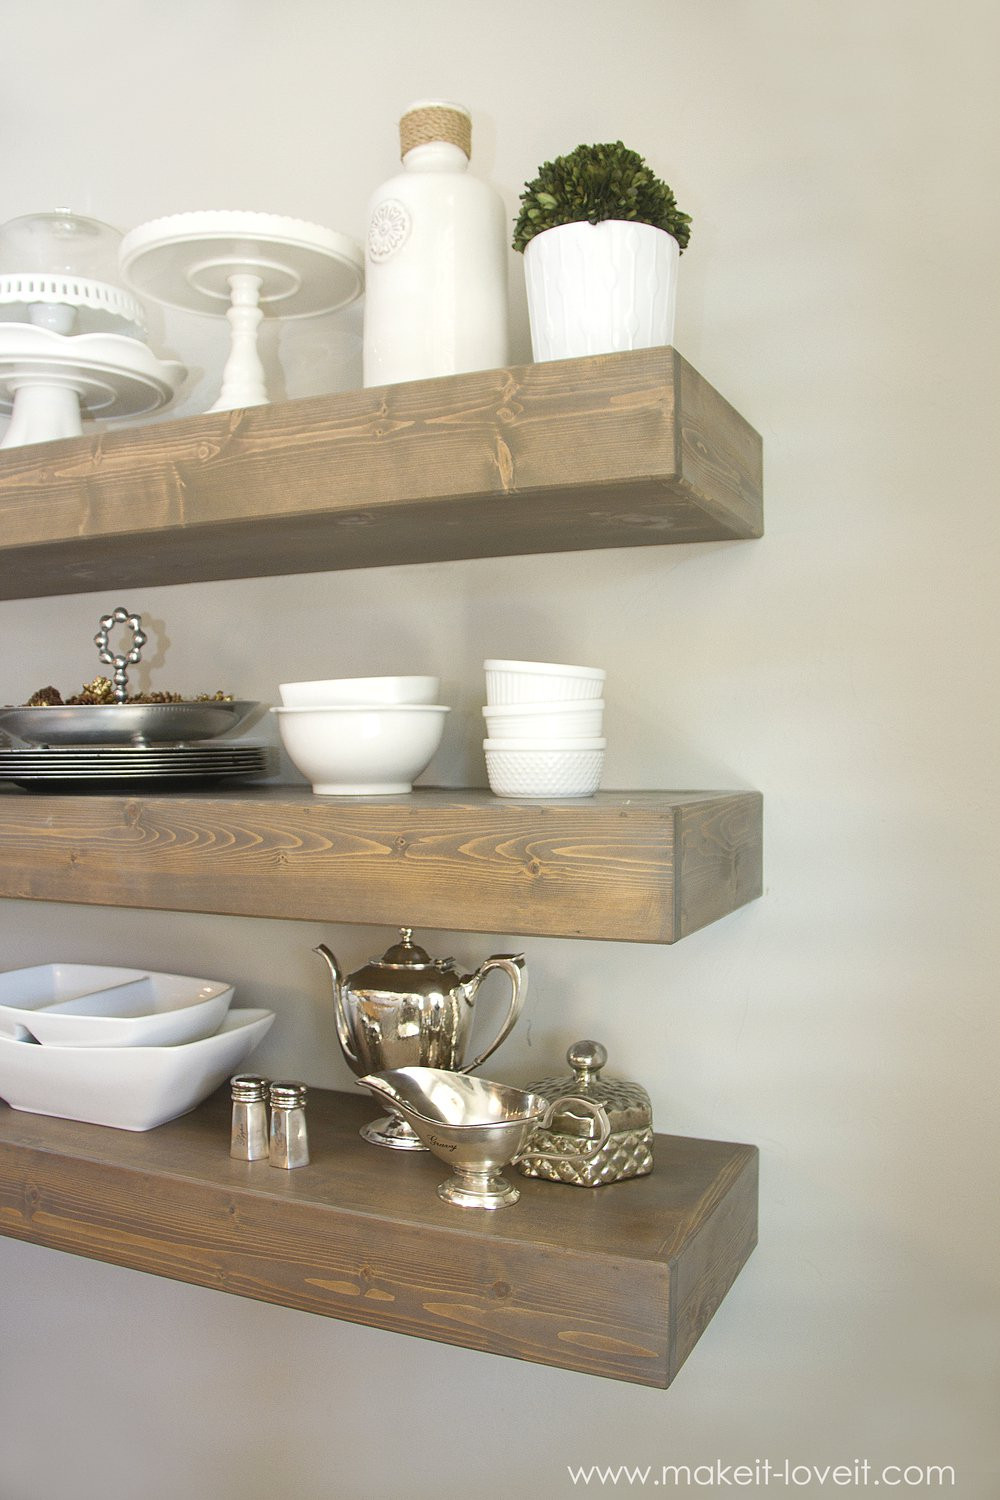 Best ideas about DIY Floating Wall Shelf . Save or Pin Fabulous DIY Floating Shelves to Make landeelu Now.